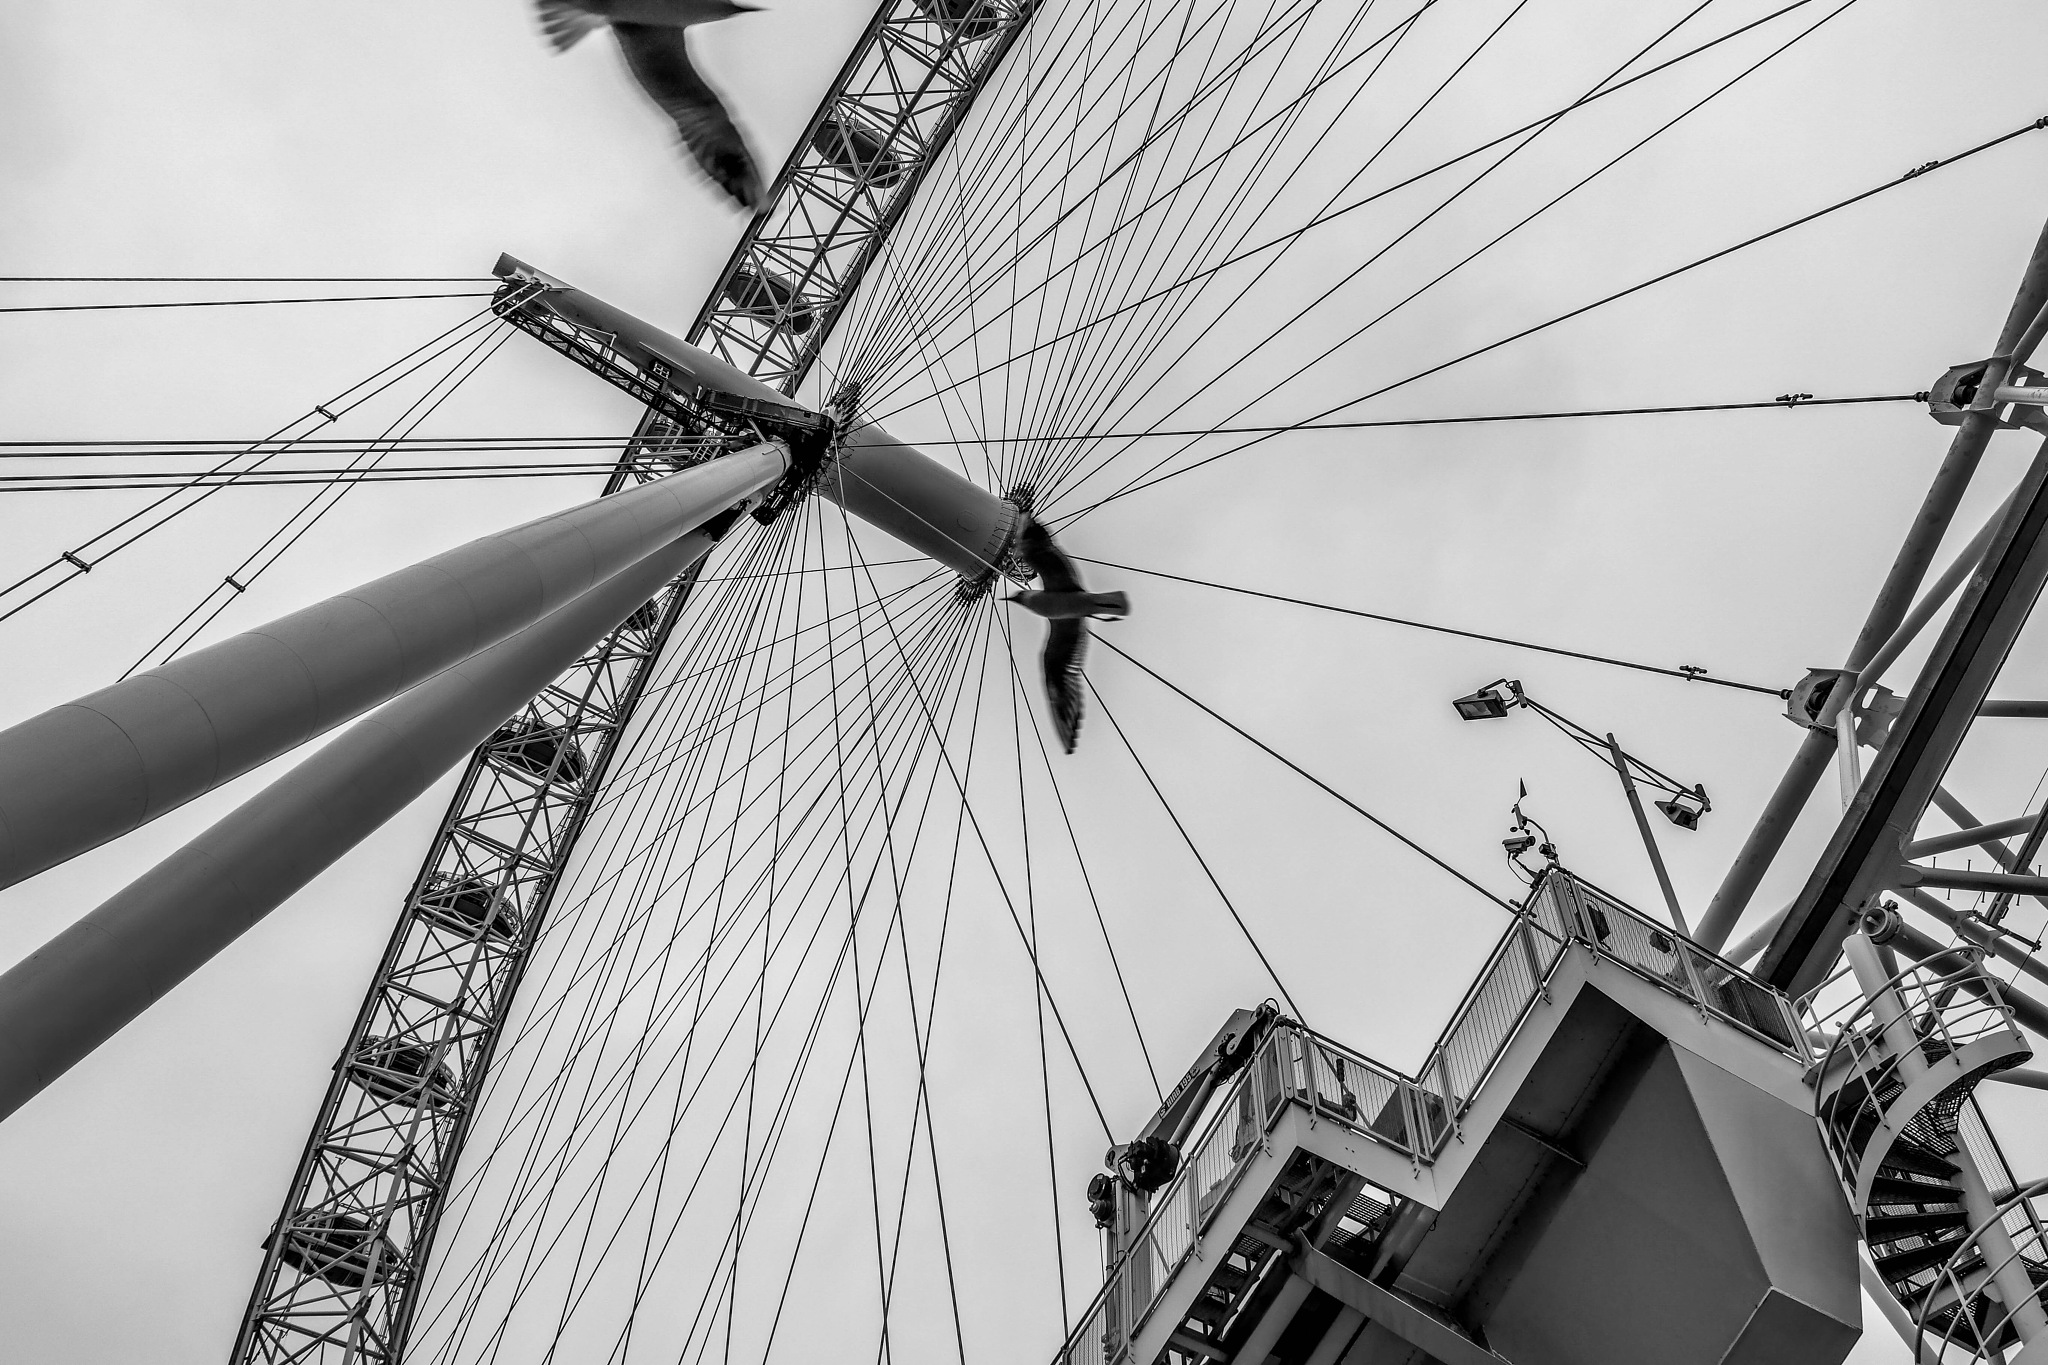 London Eye by Steph Peña